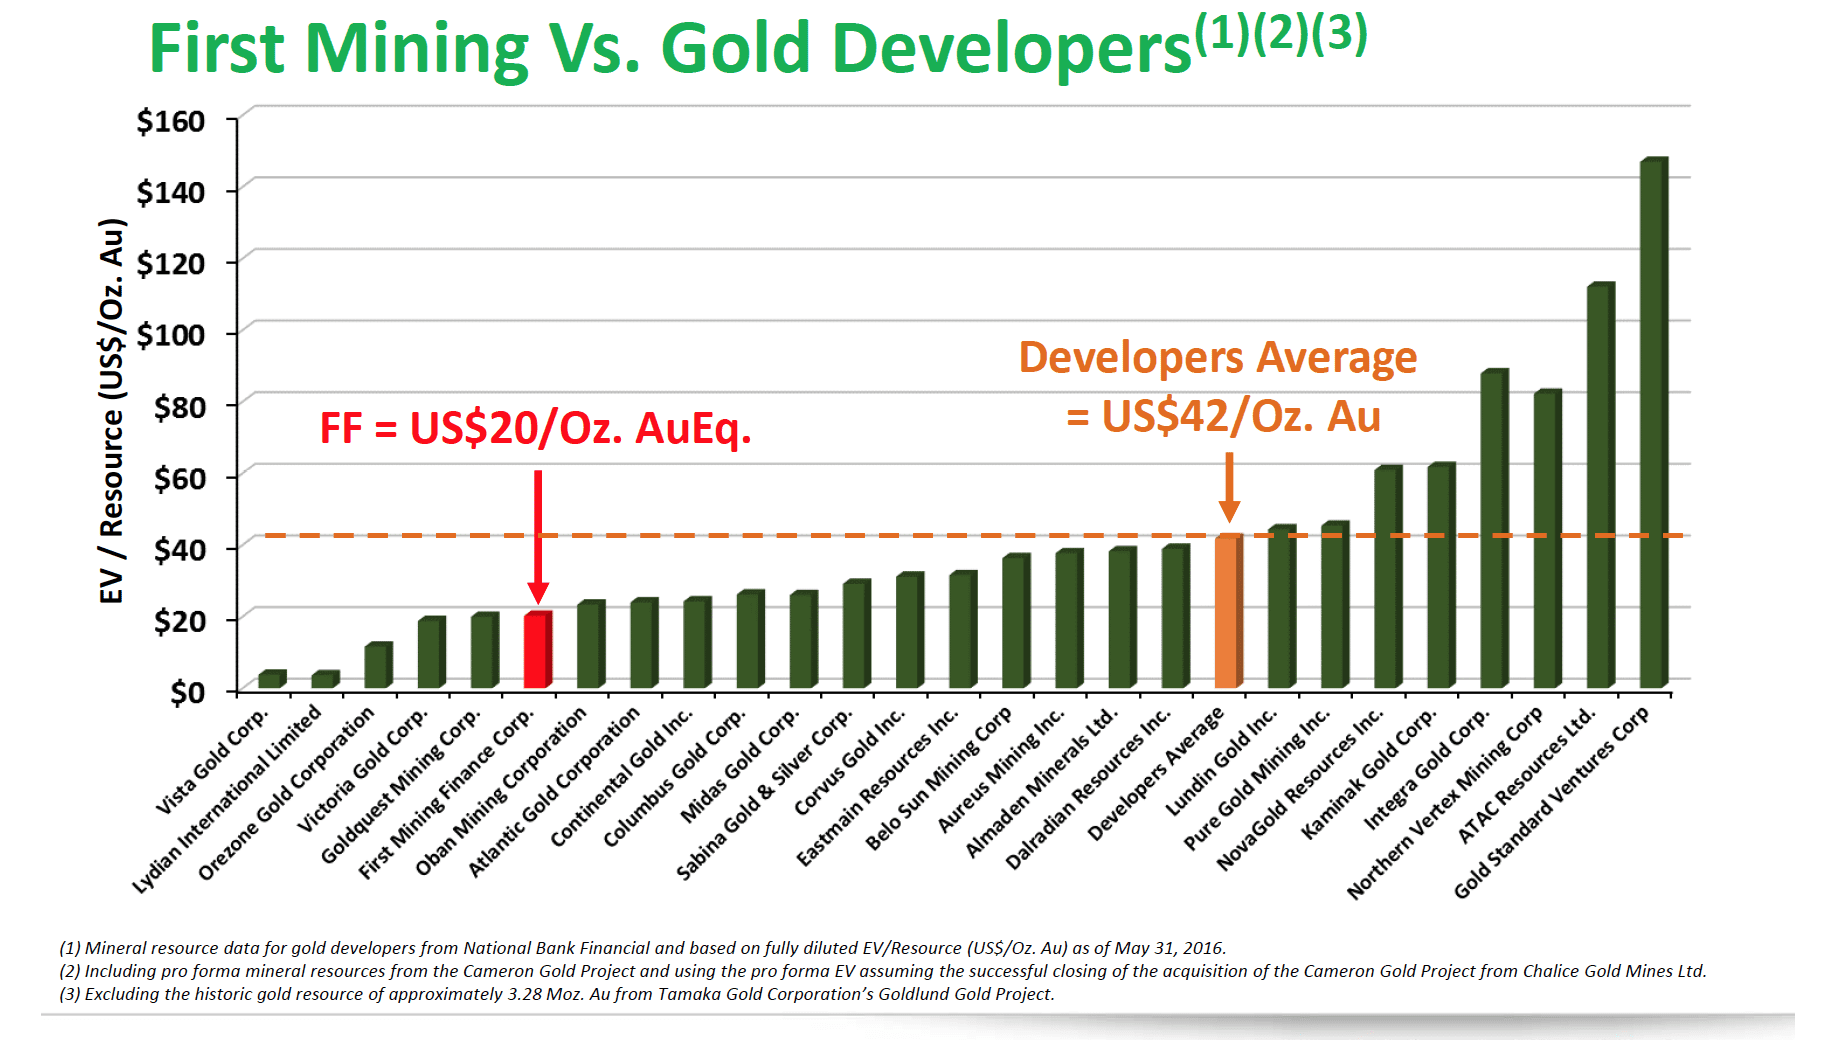 First Mining vs Gold Developers